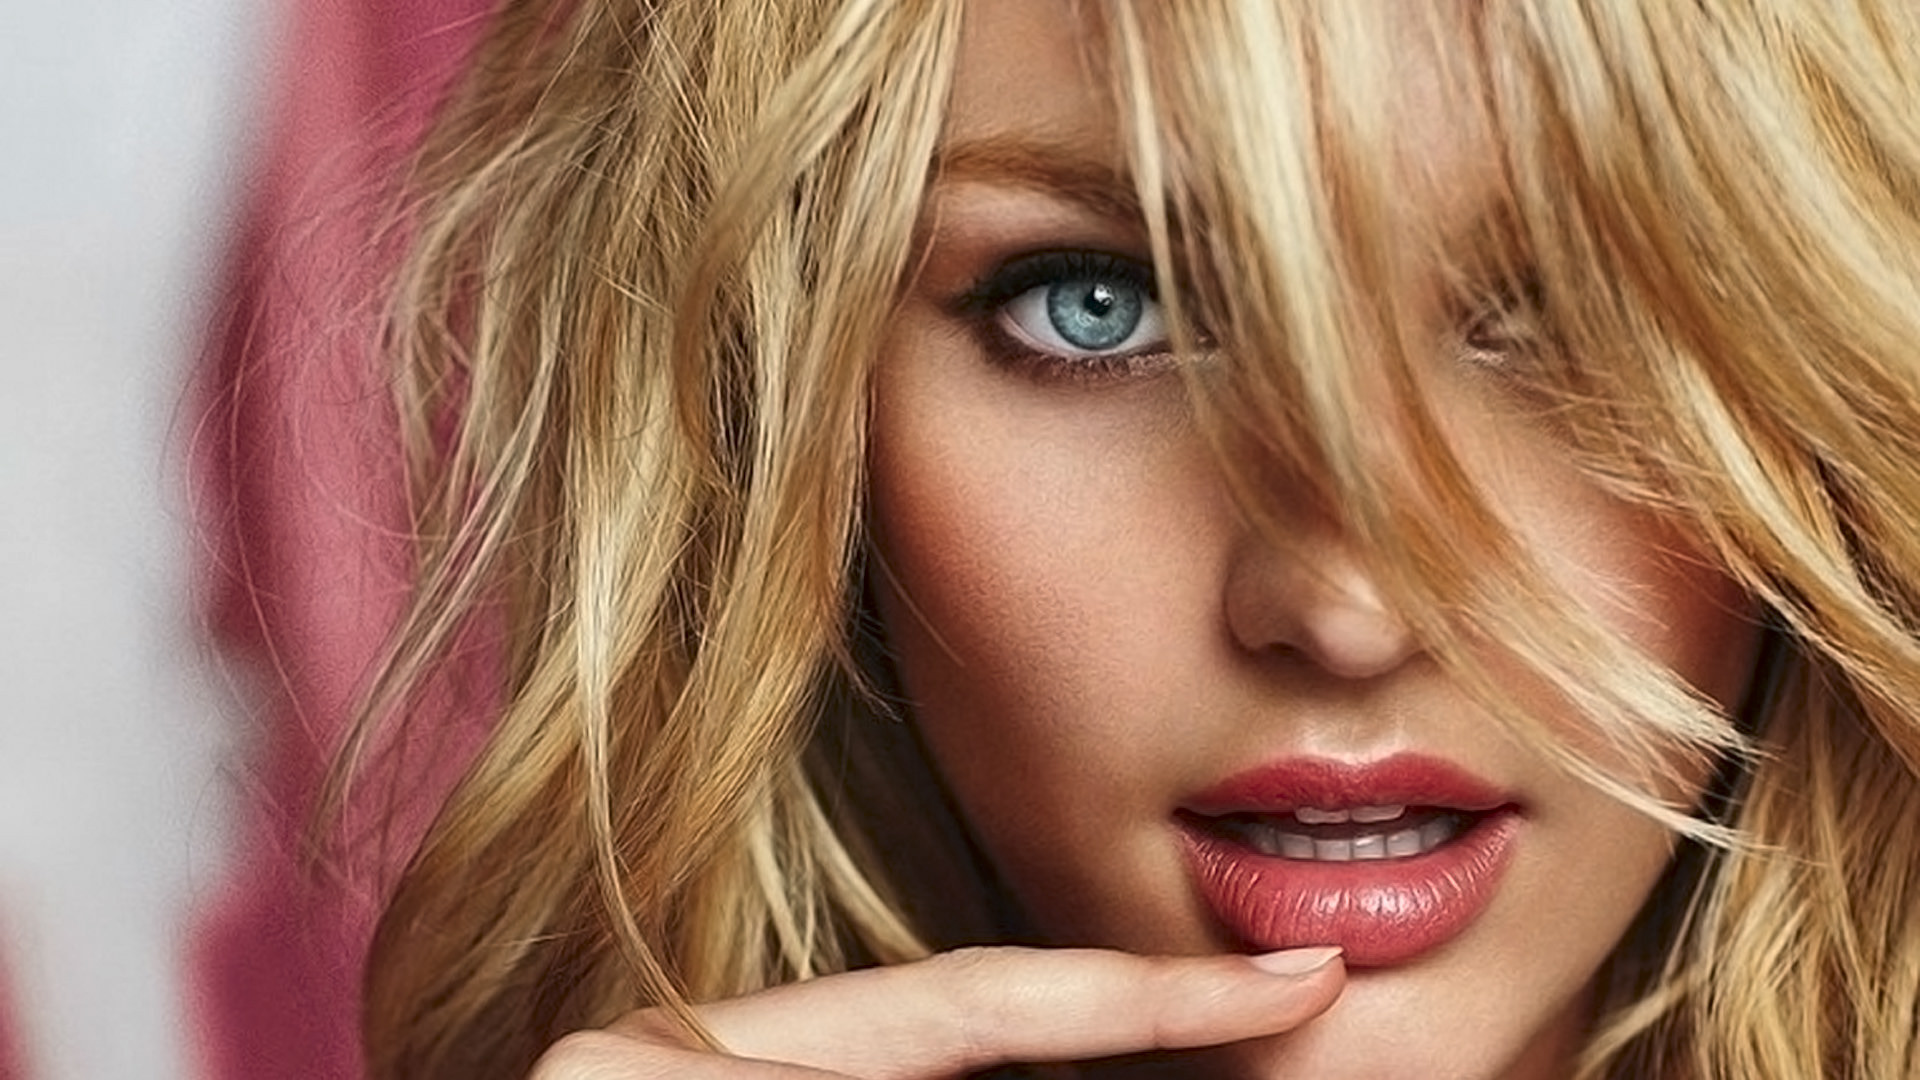 Candice Swanepoel | Candice Swanepoel Face widescreen Wide Wallpaper  | Hot HD .